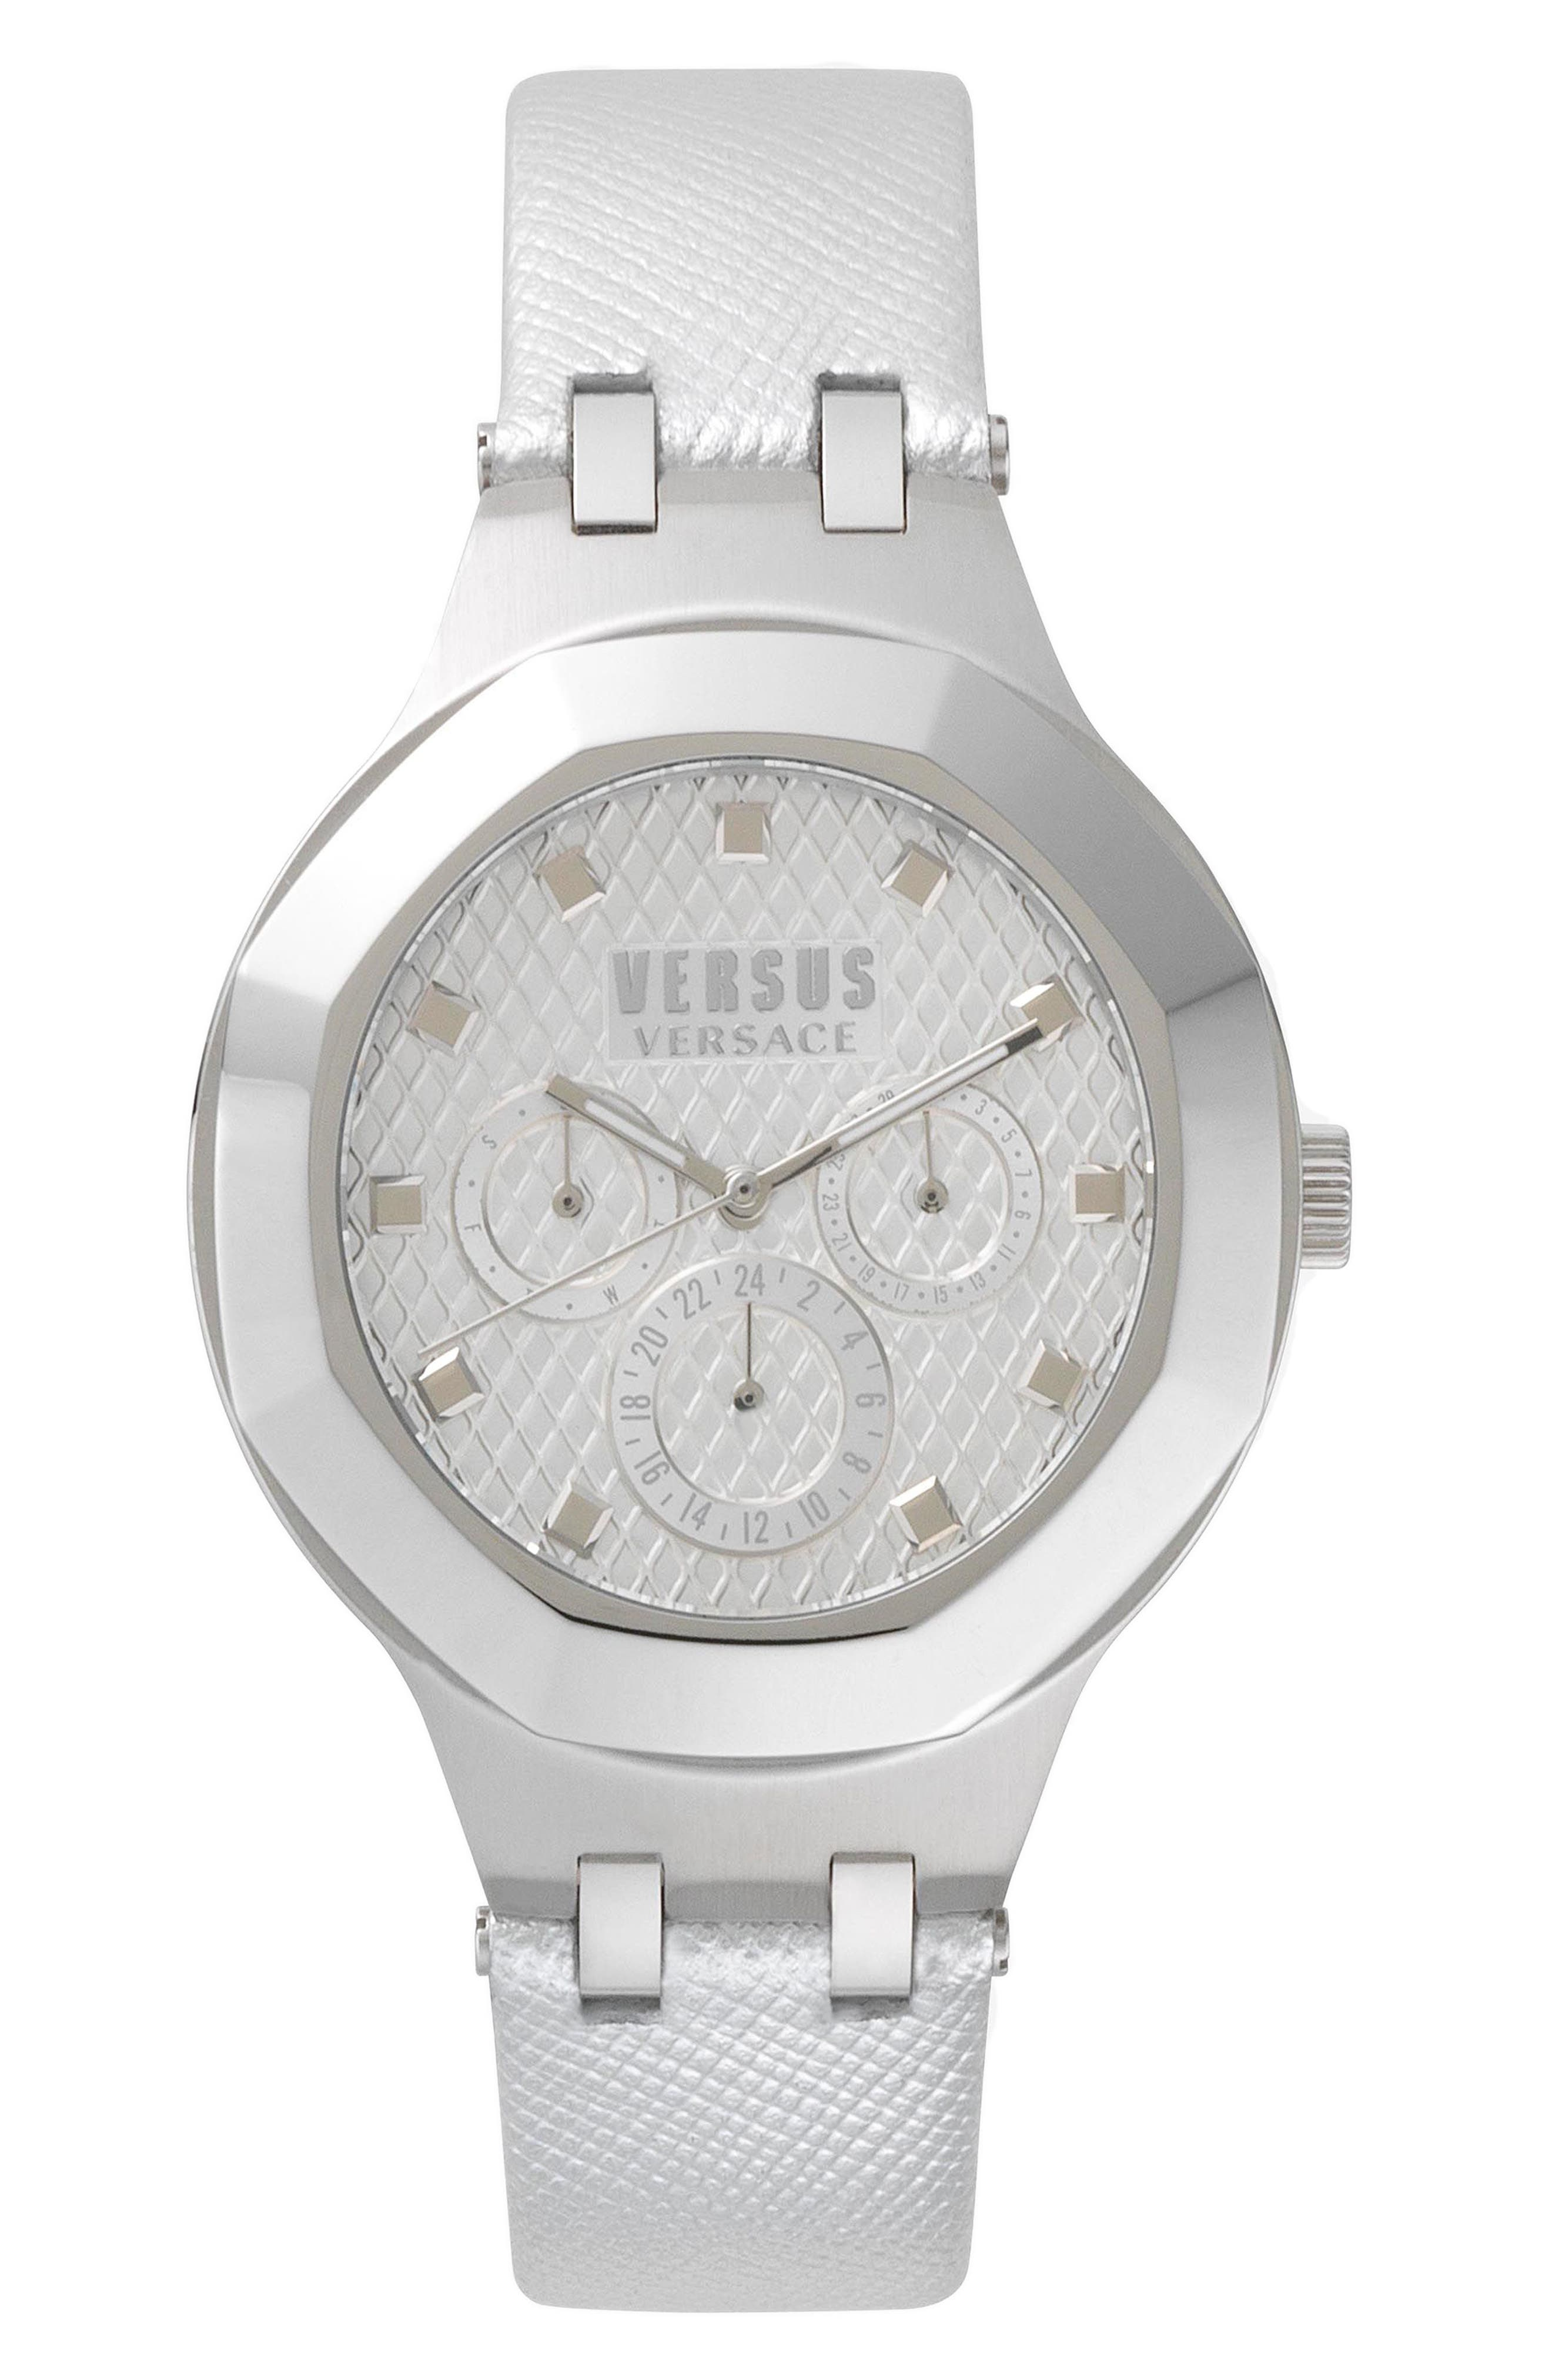 VERSUS by Versace Laguna City Multifunction Leather Strap Watch, 40mm,                             Main thumbnail 1, color,                             White/ Silver